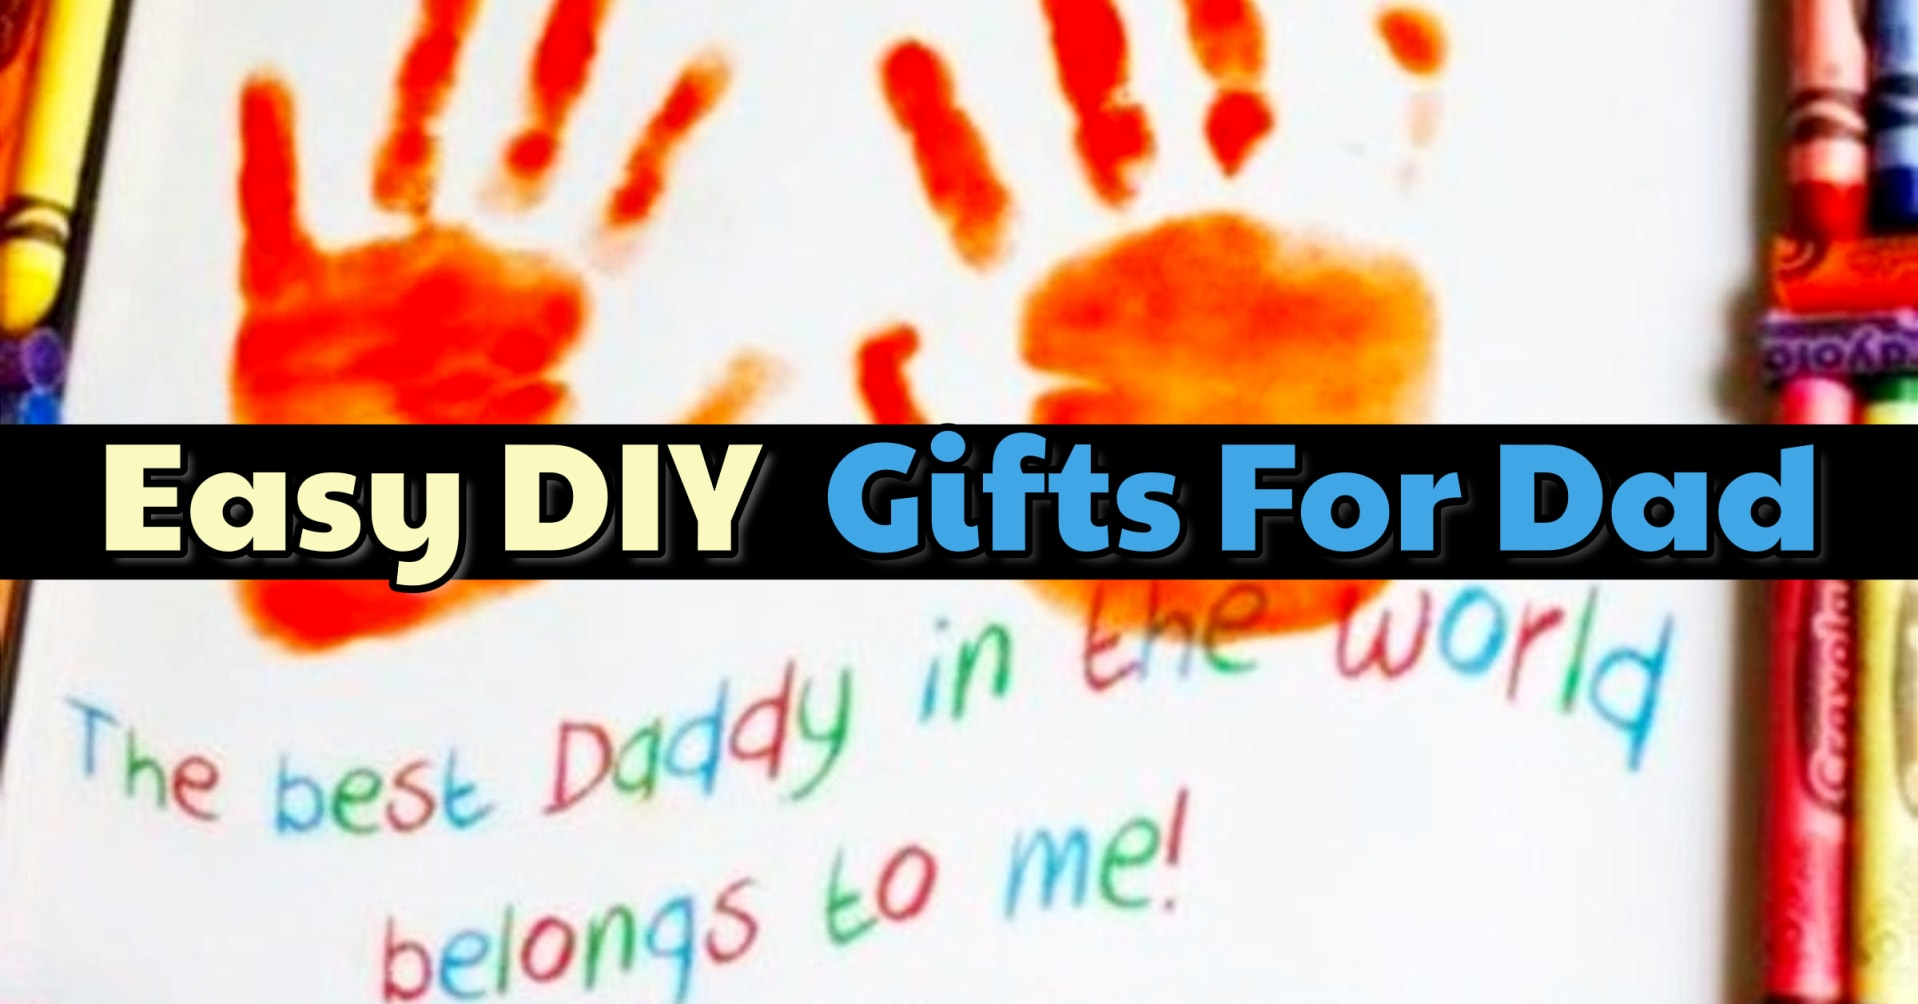 easy DIY gifts for dad kids can make